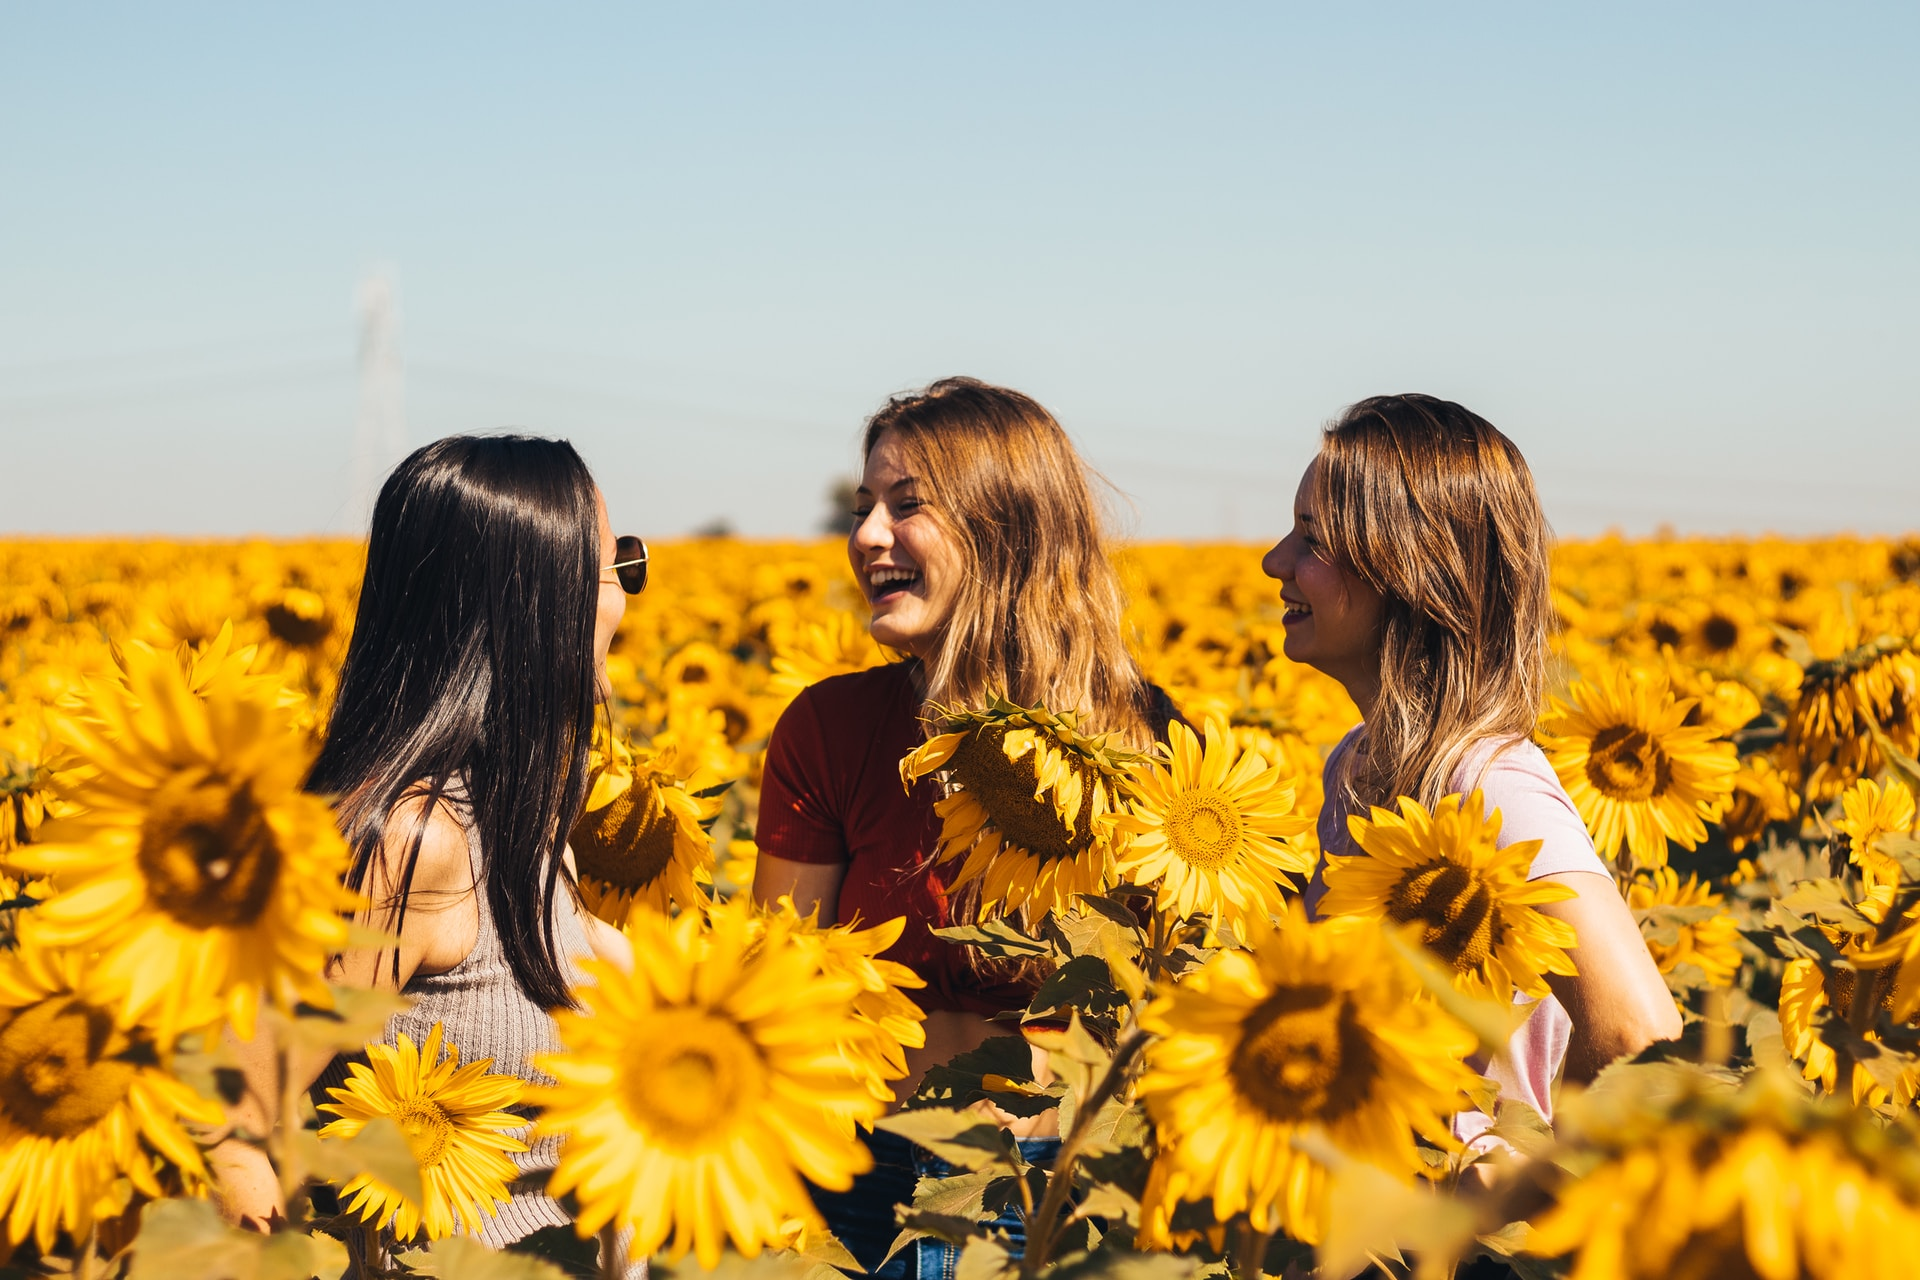 3 women in yellow sunflower field during daytime